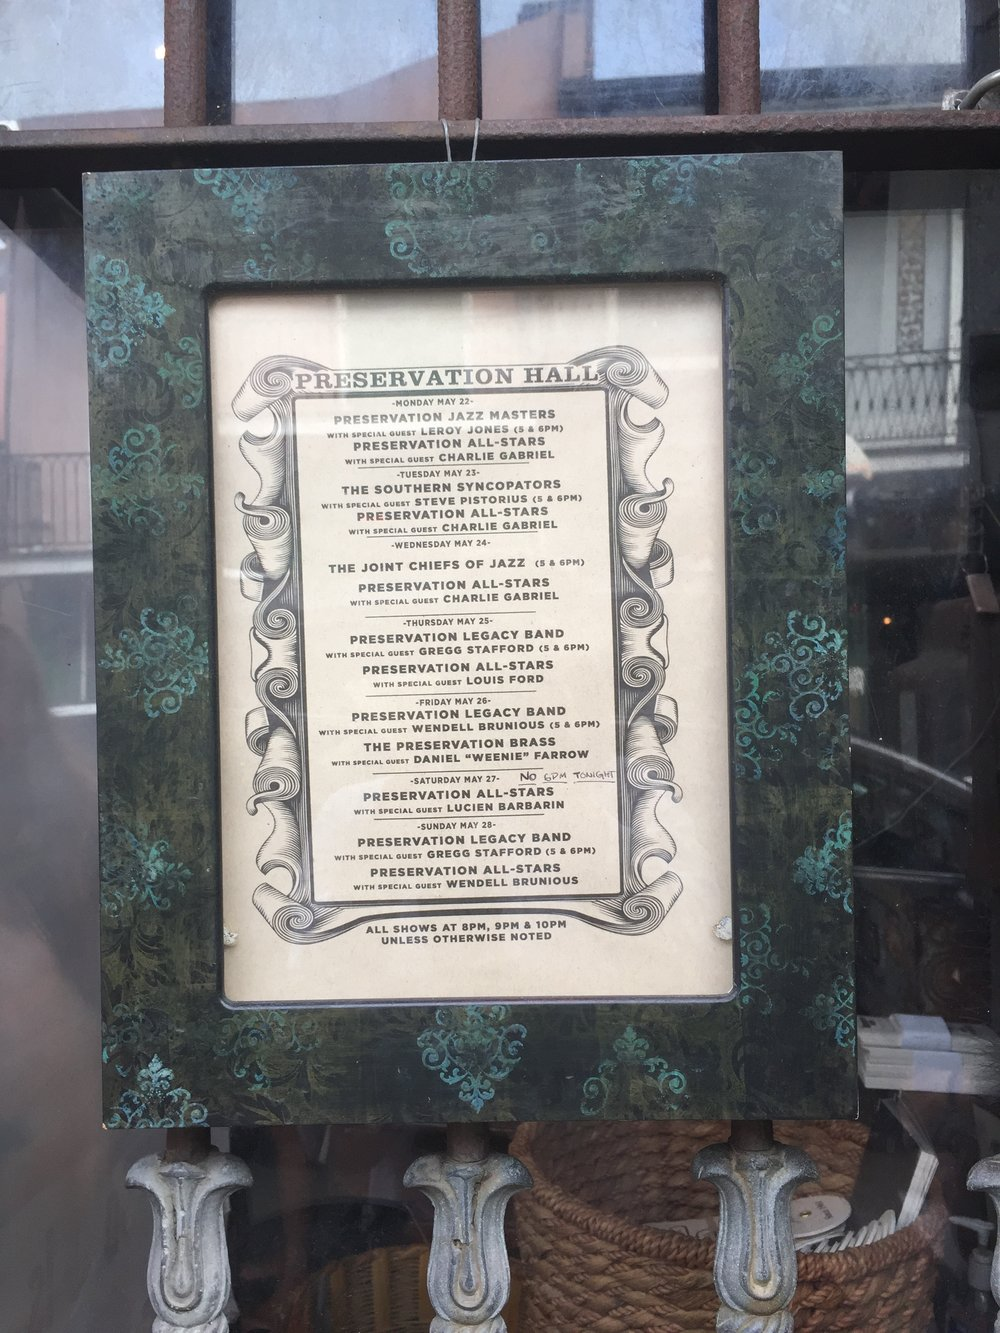 Schedule for Preservation Hall